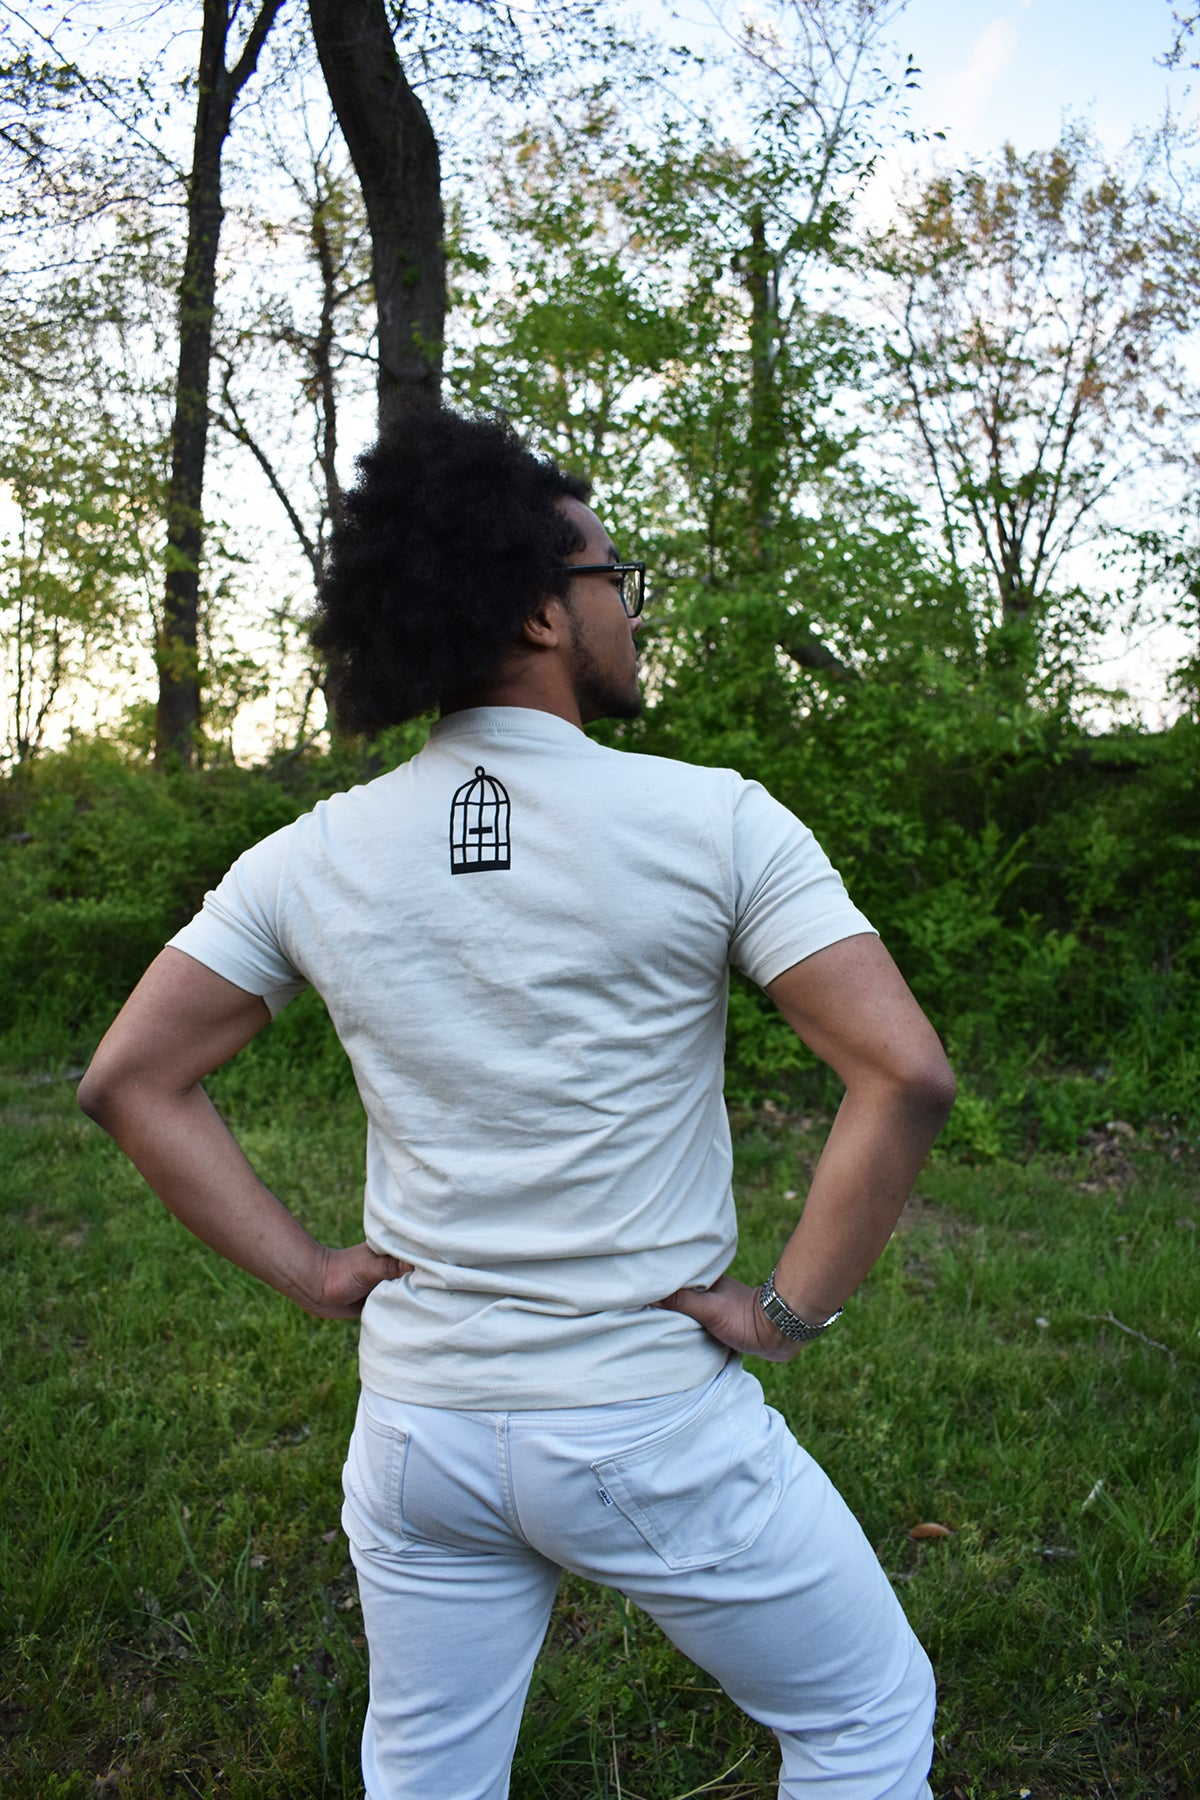 Male model wearing a cream colored t-shirt with a small, No Egrets birdcage logo in black on the back between the shoulders.